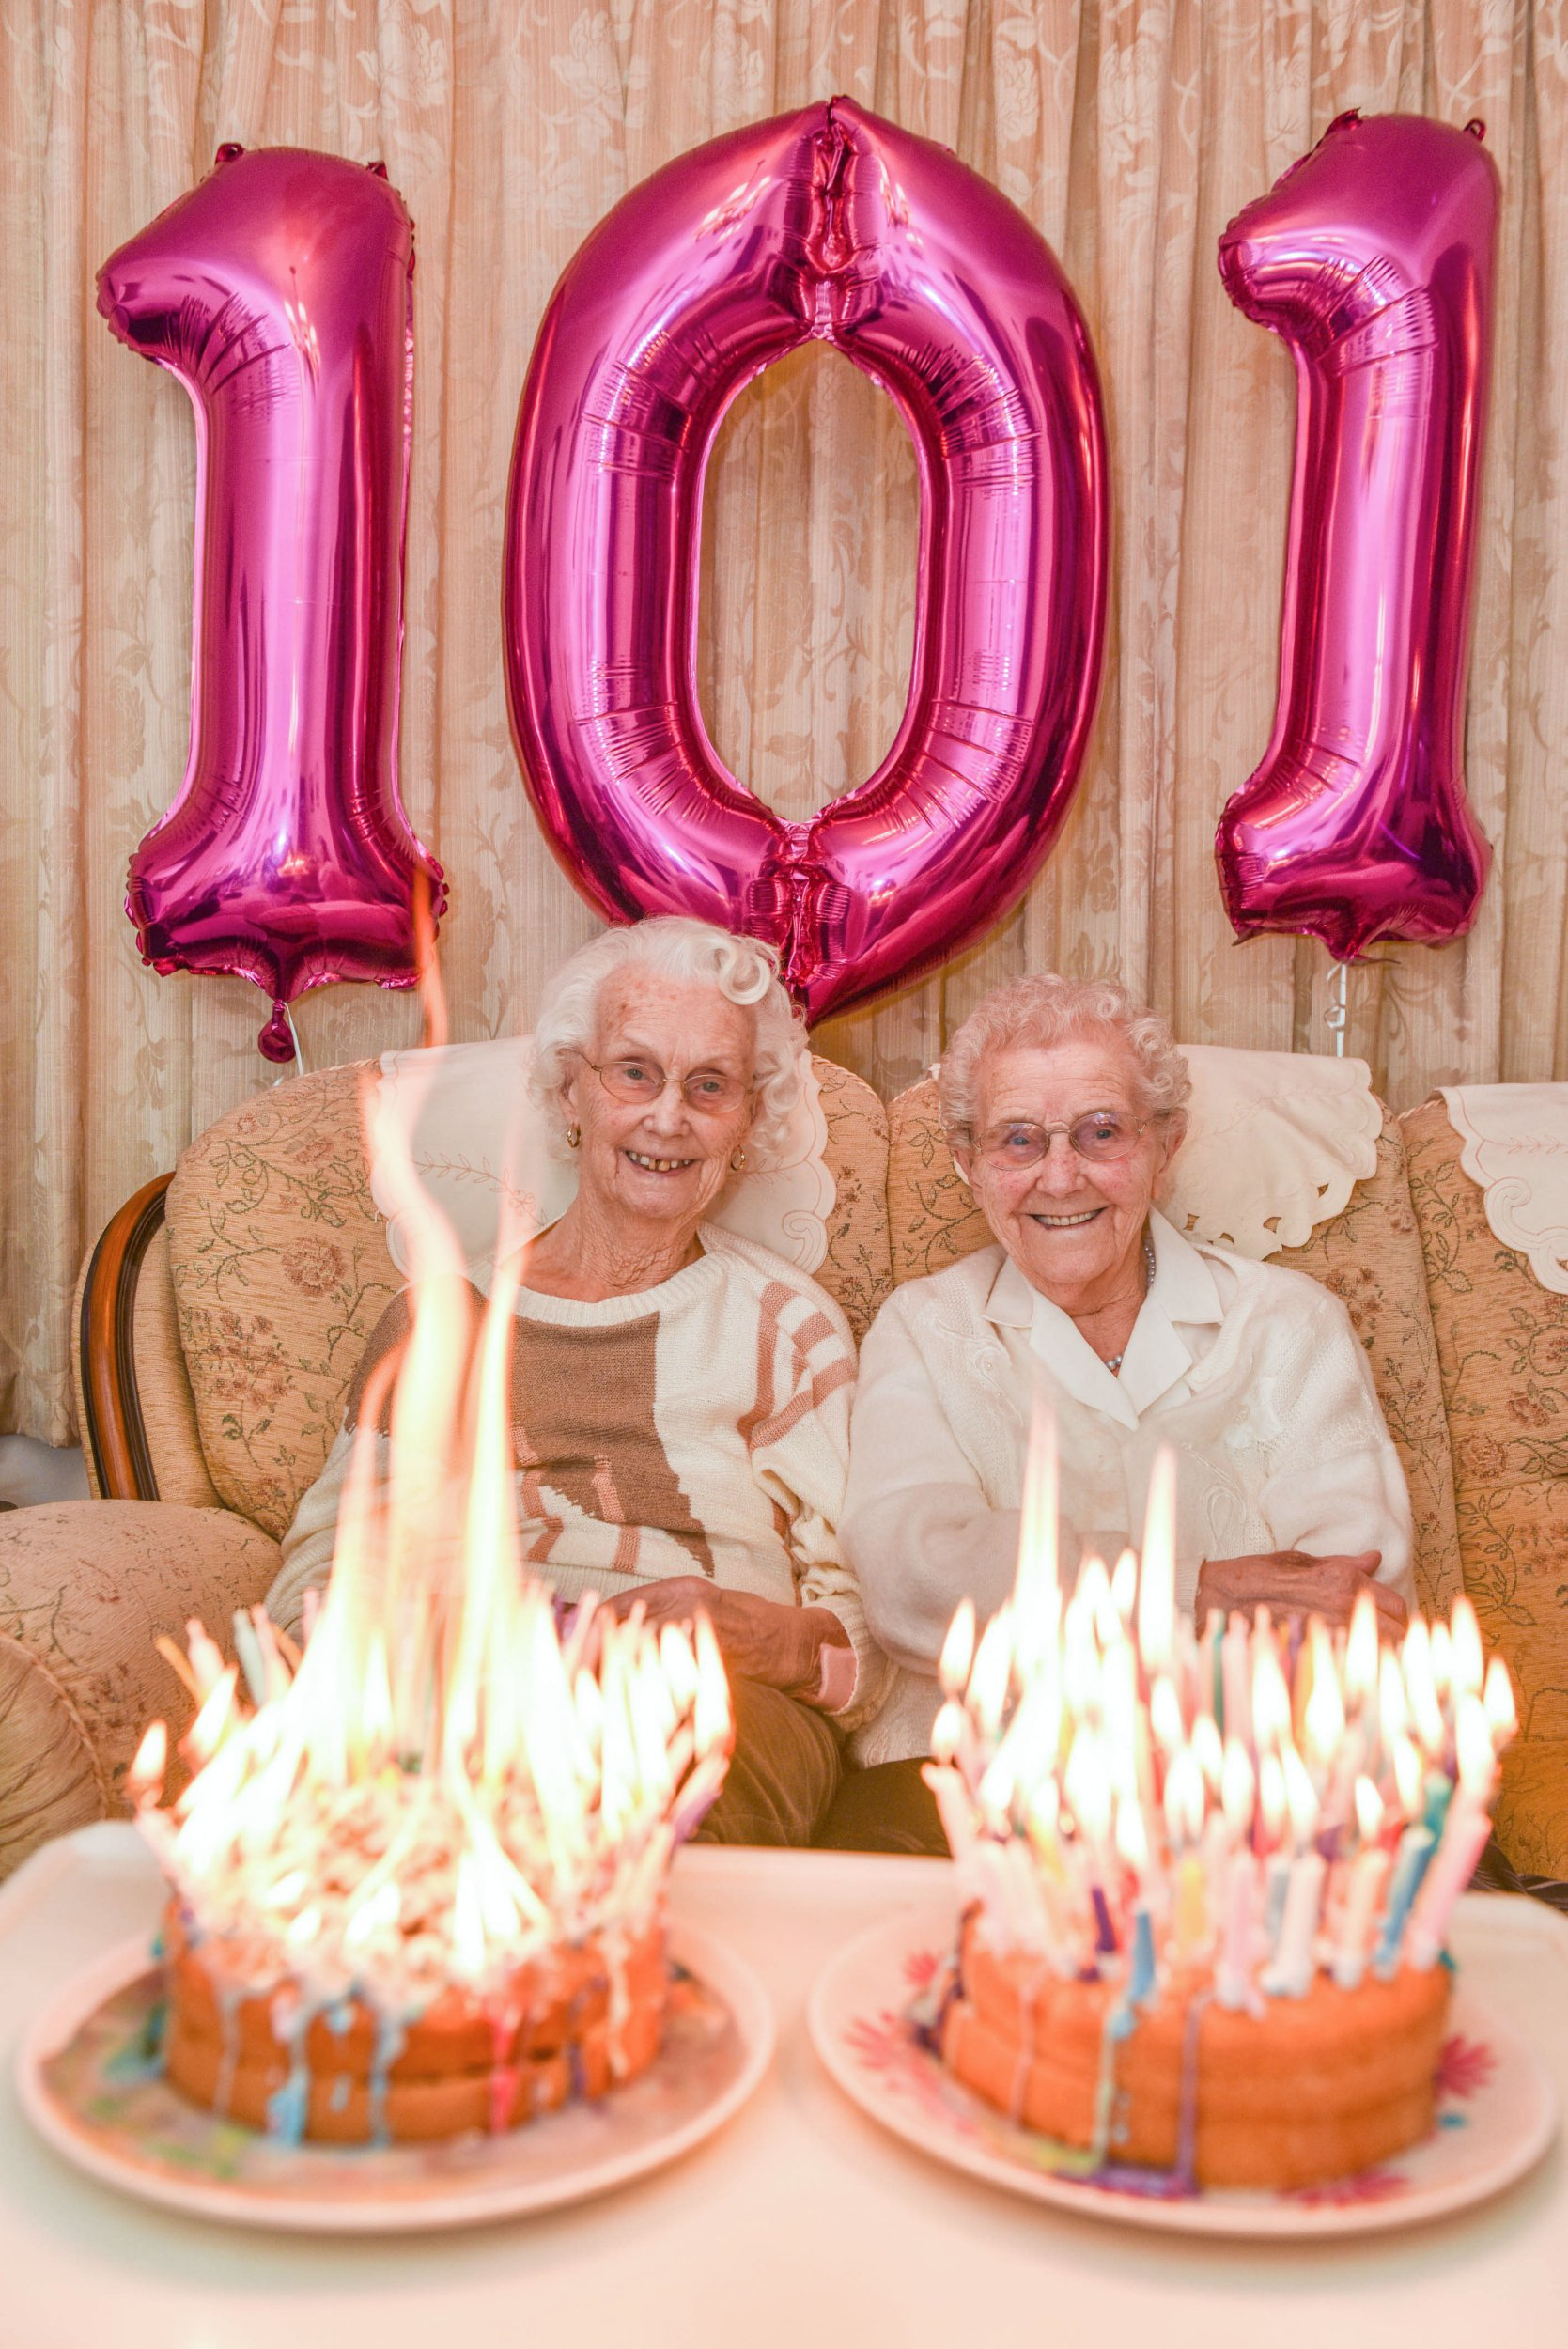 101 YEAR OLD TWINS CANDLE FIRE